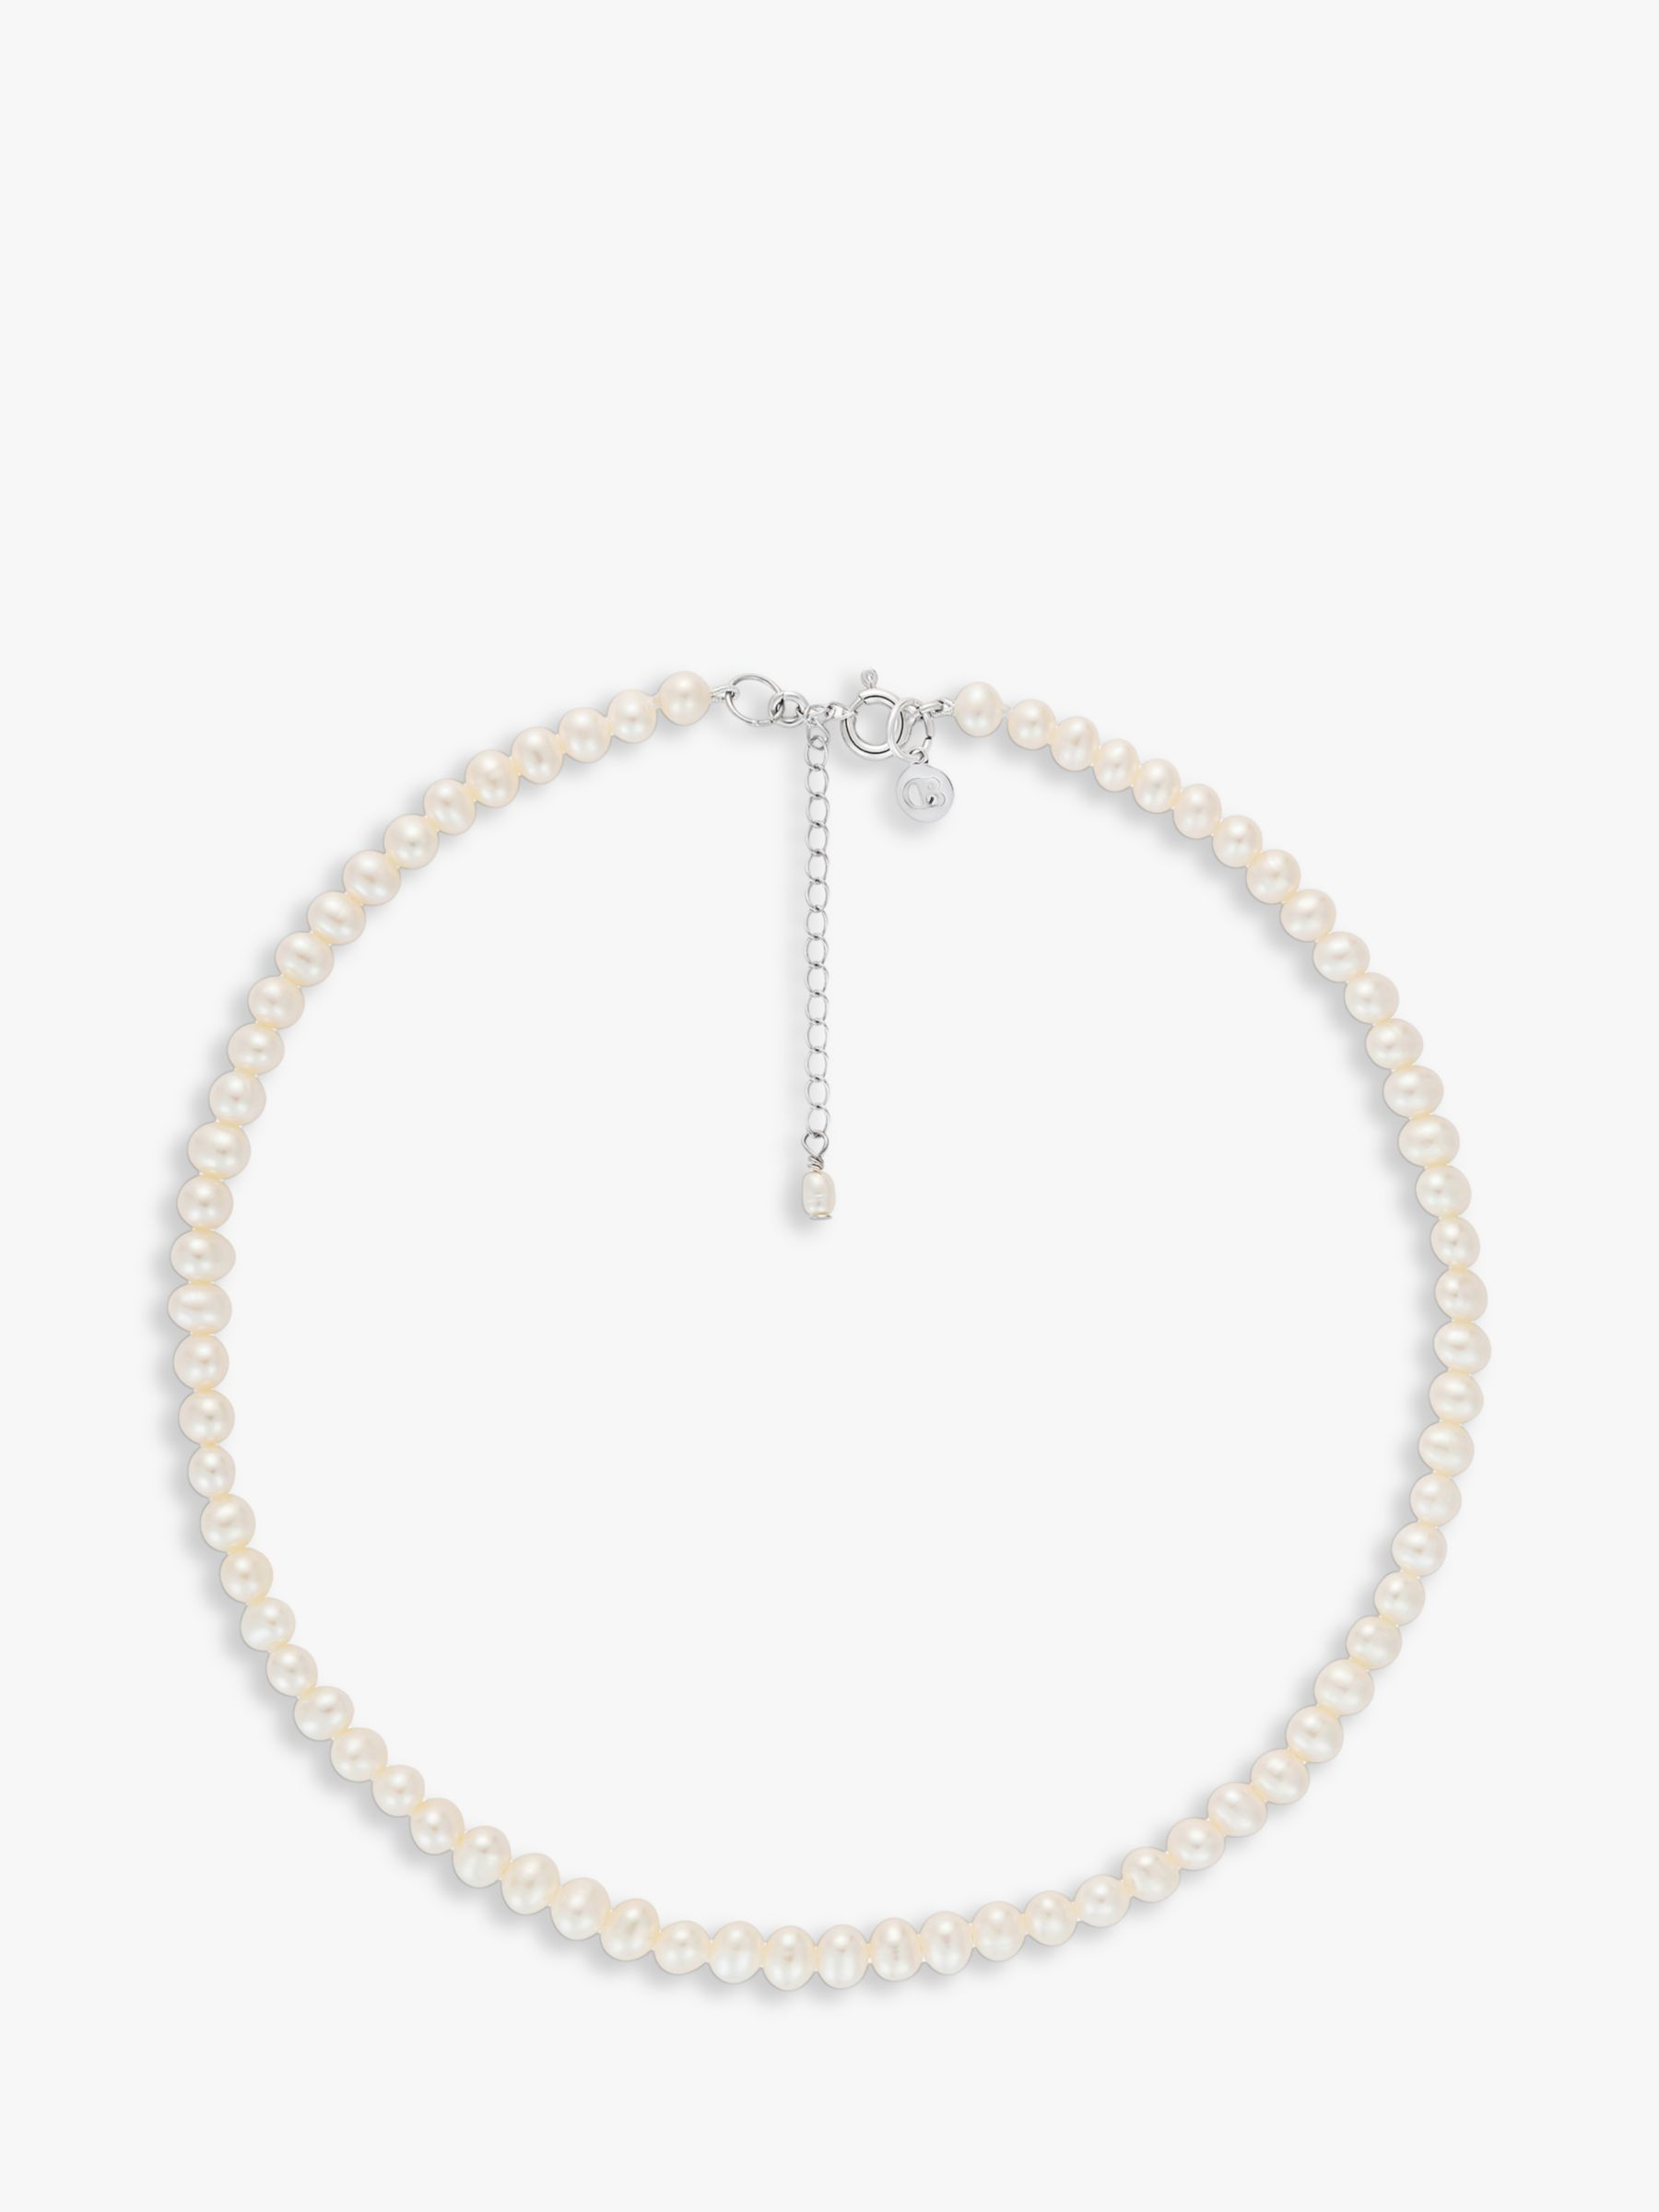 Claudia Bradby Claudia Bradby Sterling Silver Freshwater Pearl Collar Necklace, White